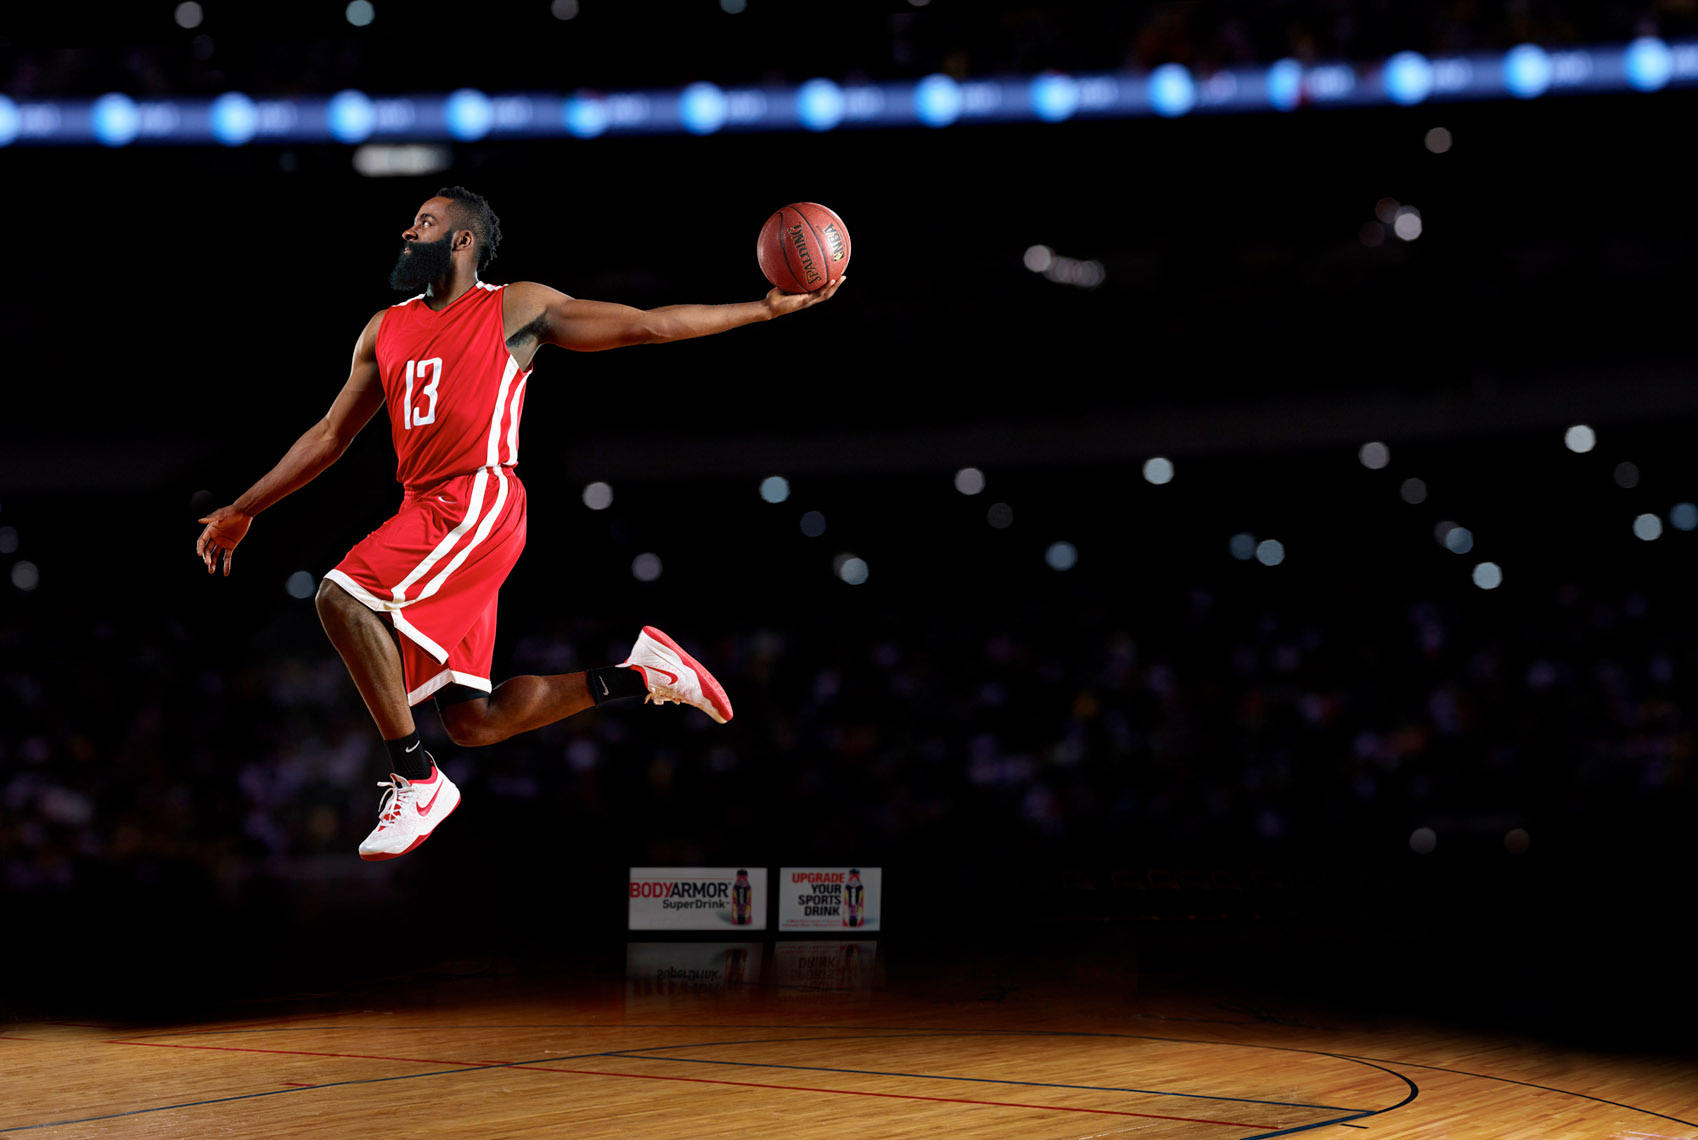 James Harden of Houston for BodyArmor photo by Monte Isom